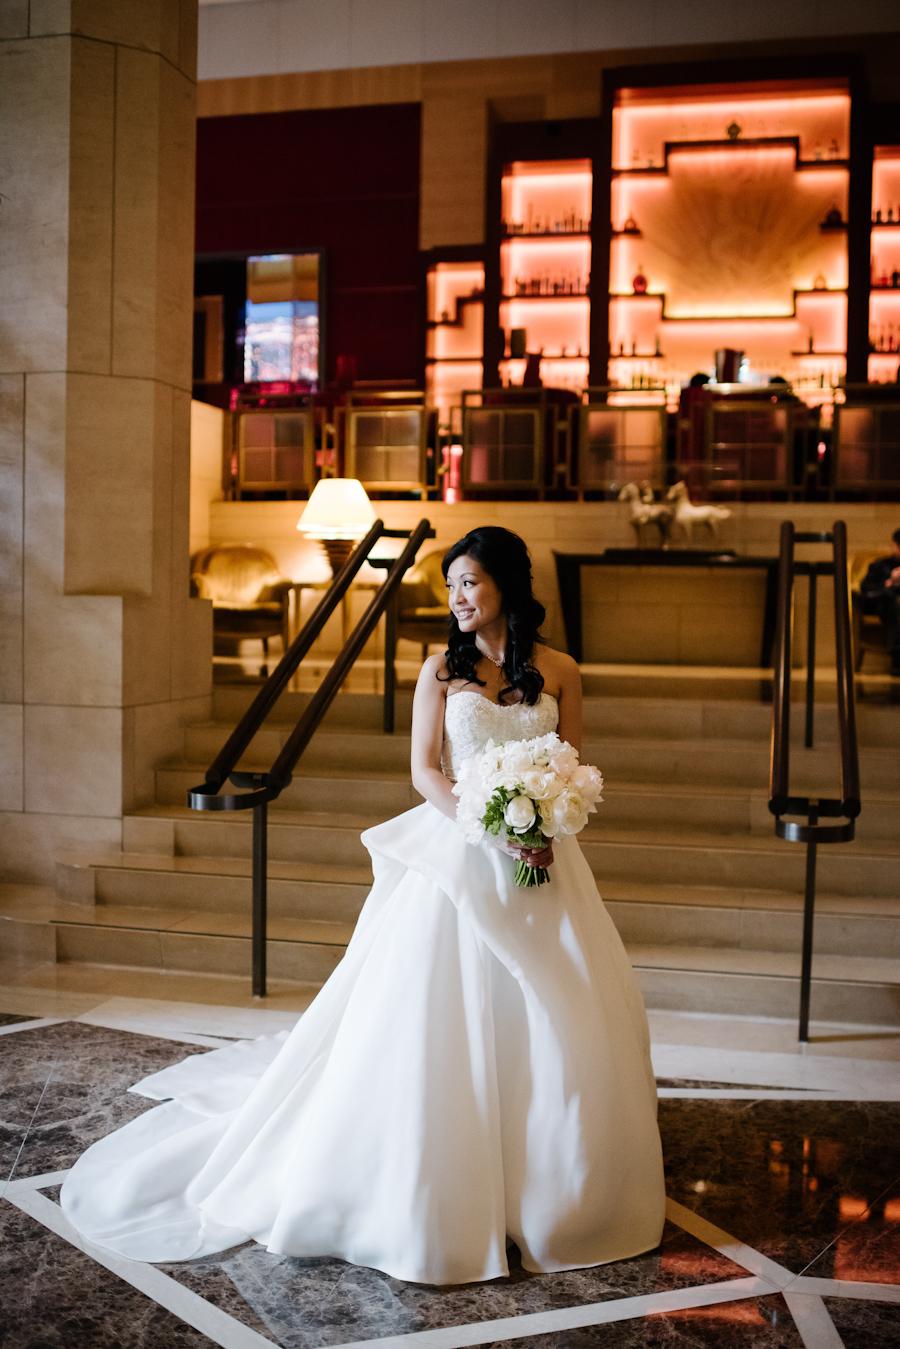 four seasons hotel wedding ang weddings and events brian hatton photography-14.jpg